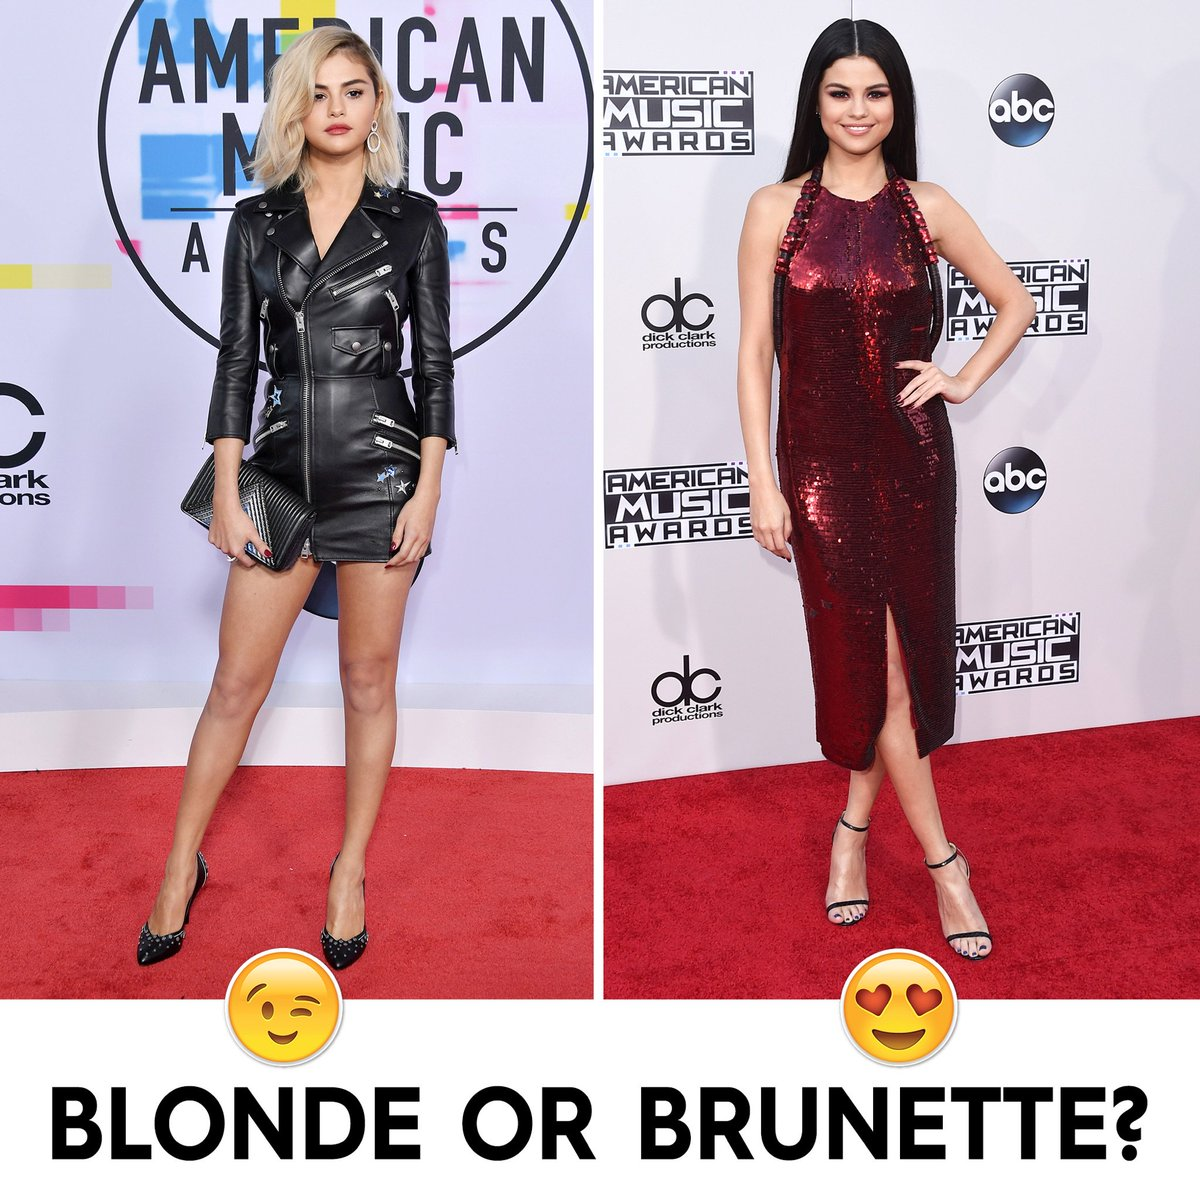 RT @iHeartRadio: Which look do you prefer? #AMAs https://t.co/hHpicoeIS1